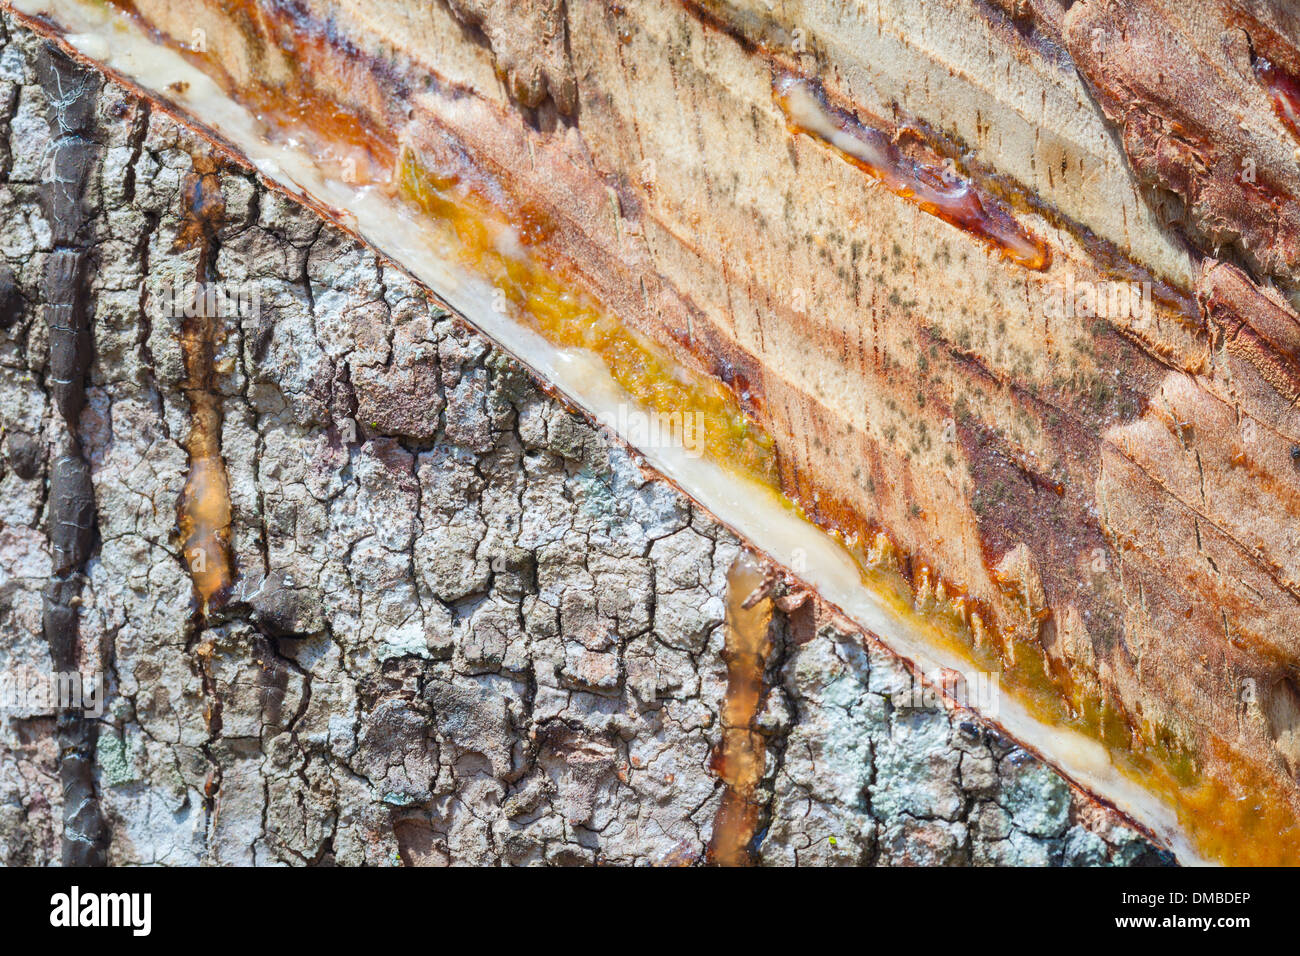 Closeup of a cut rubber tree, Thailand - Stock Image